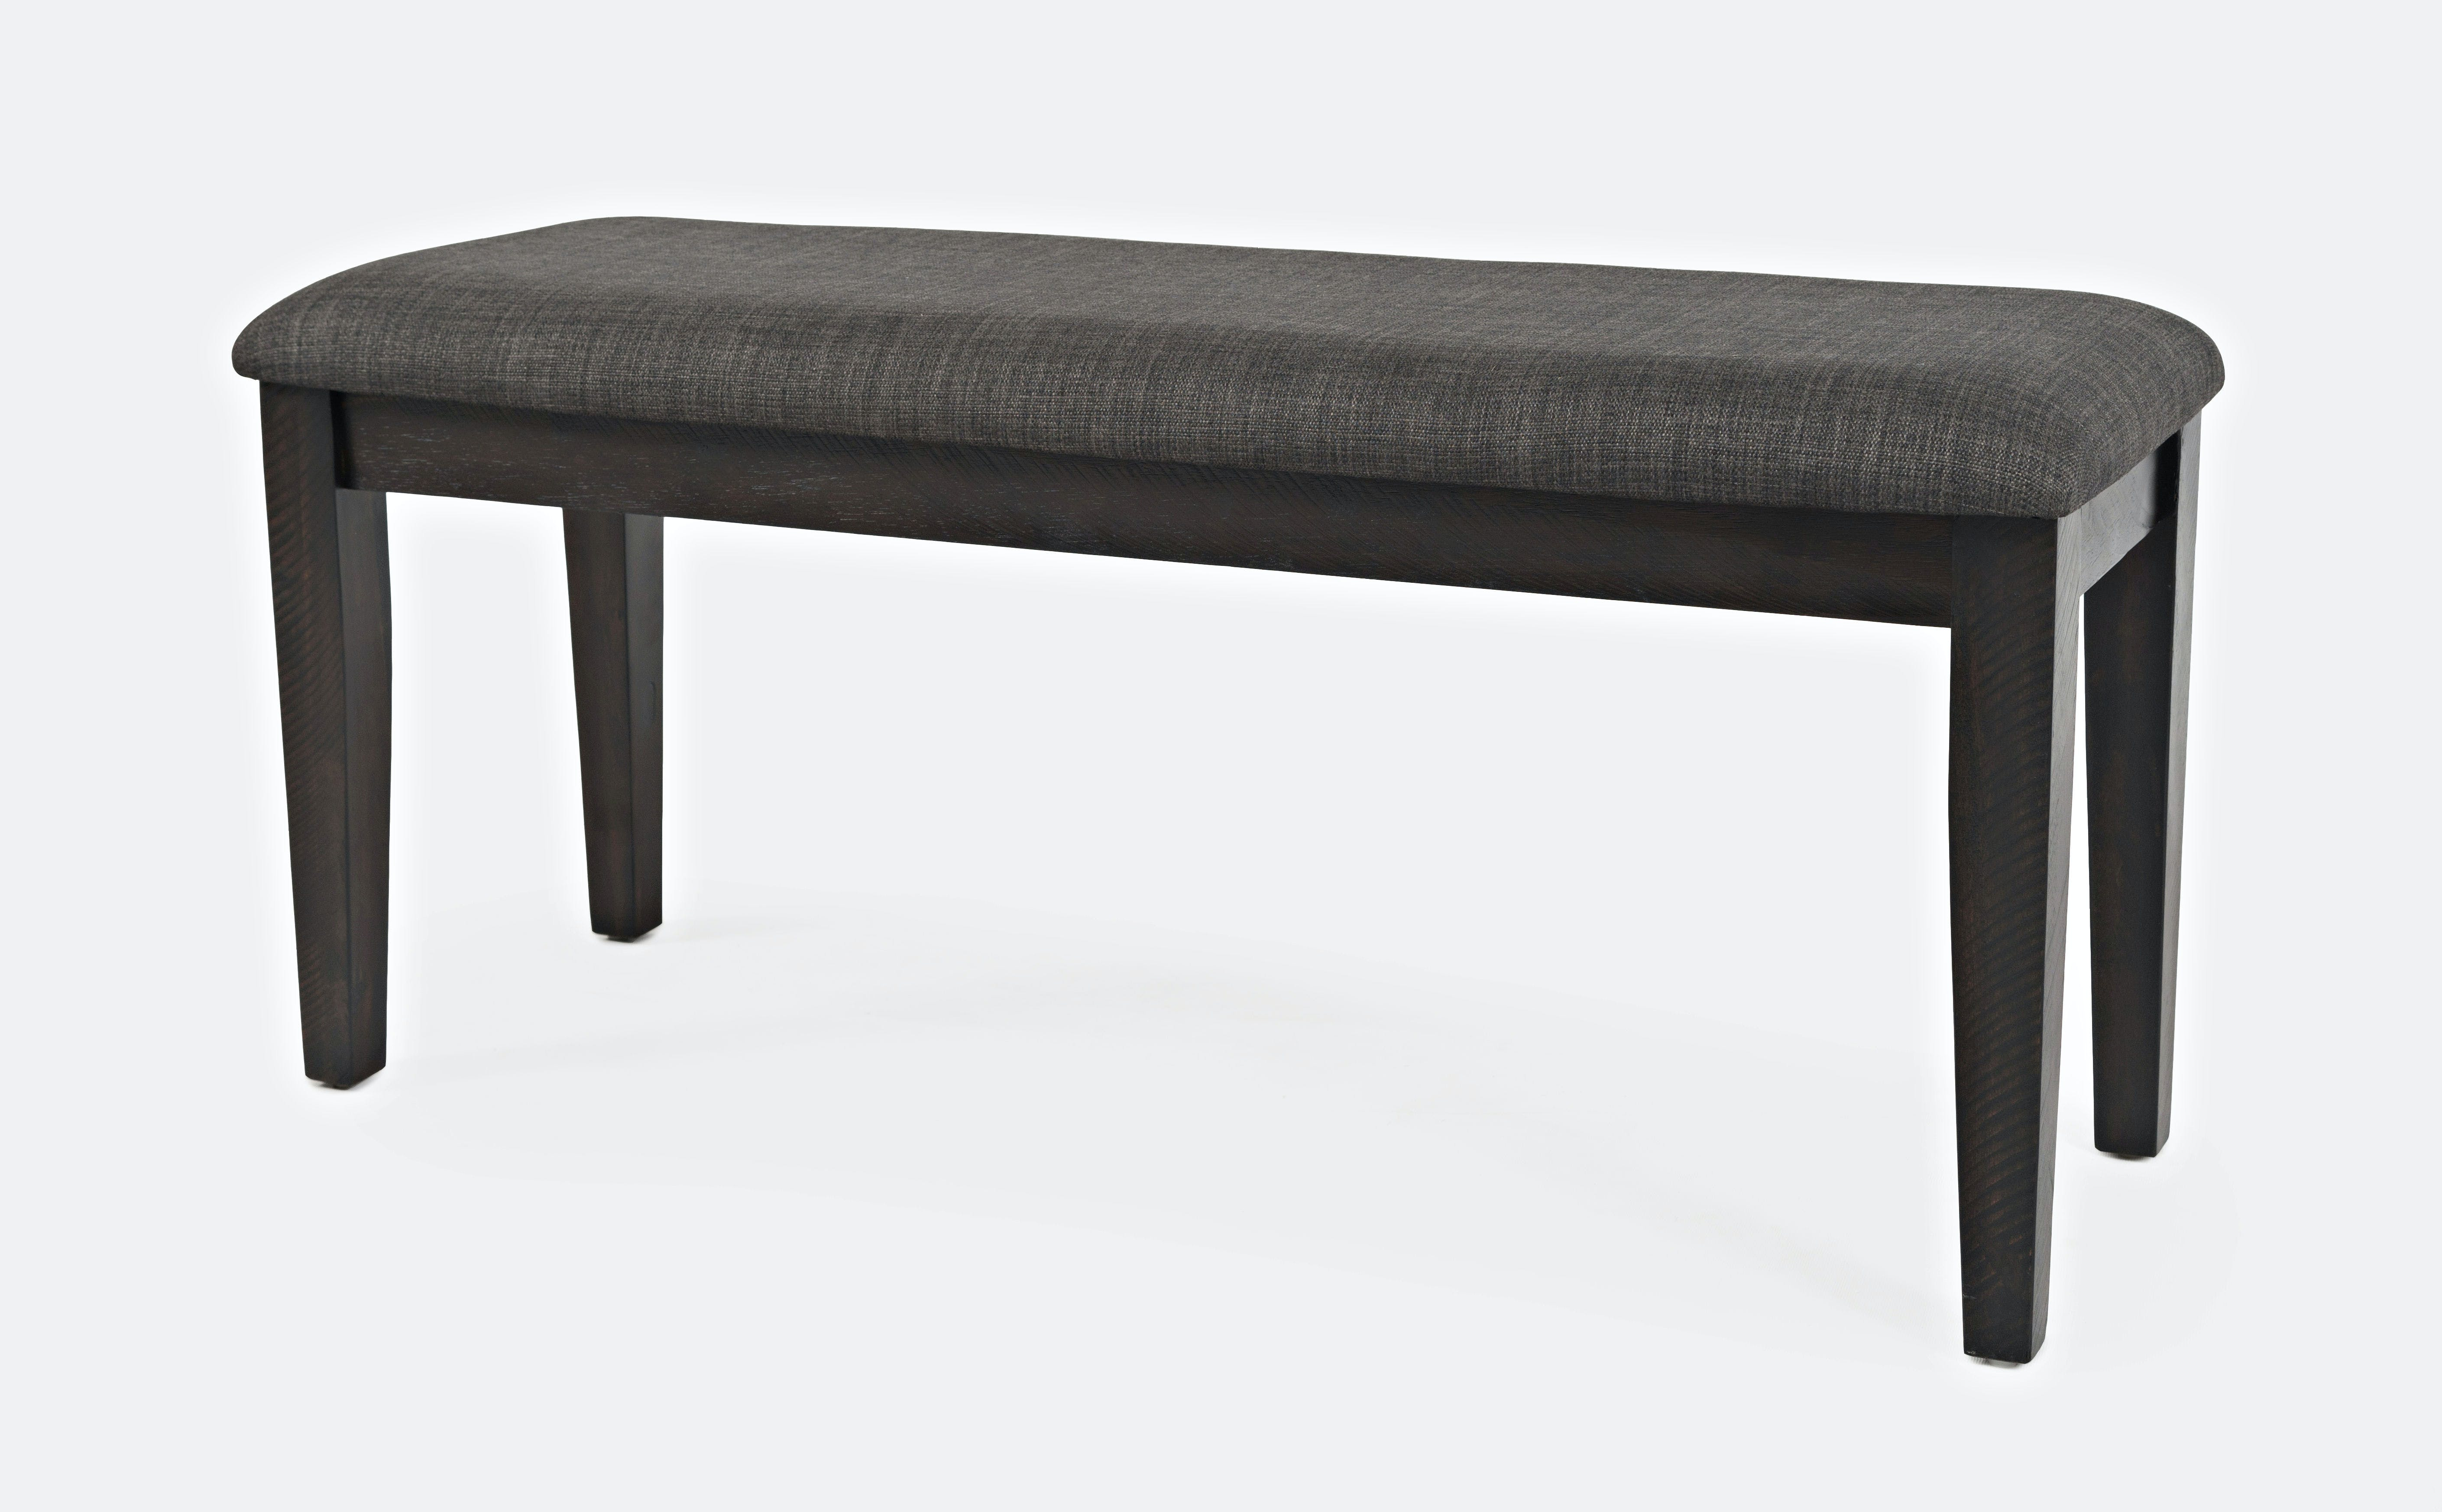 Jofran Dining Room Upholstered Dining Bench 1838 42kd Gavigan S Furniture Bel Air Catonsville